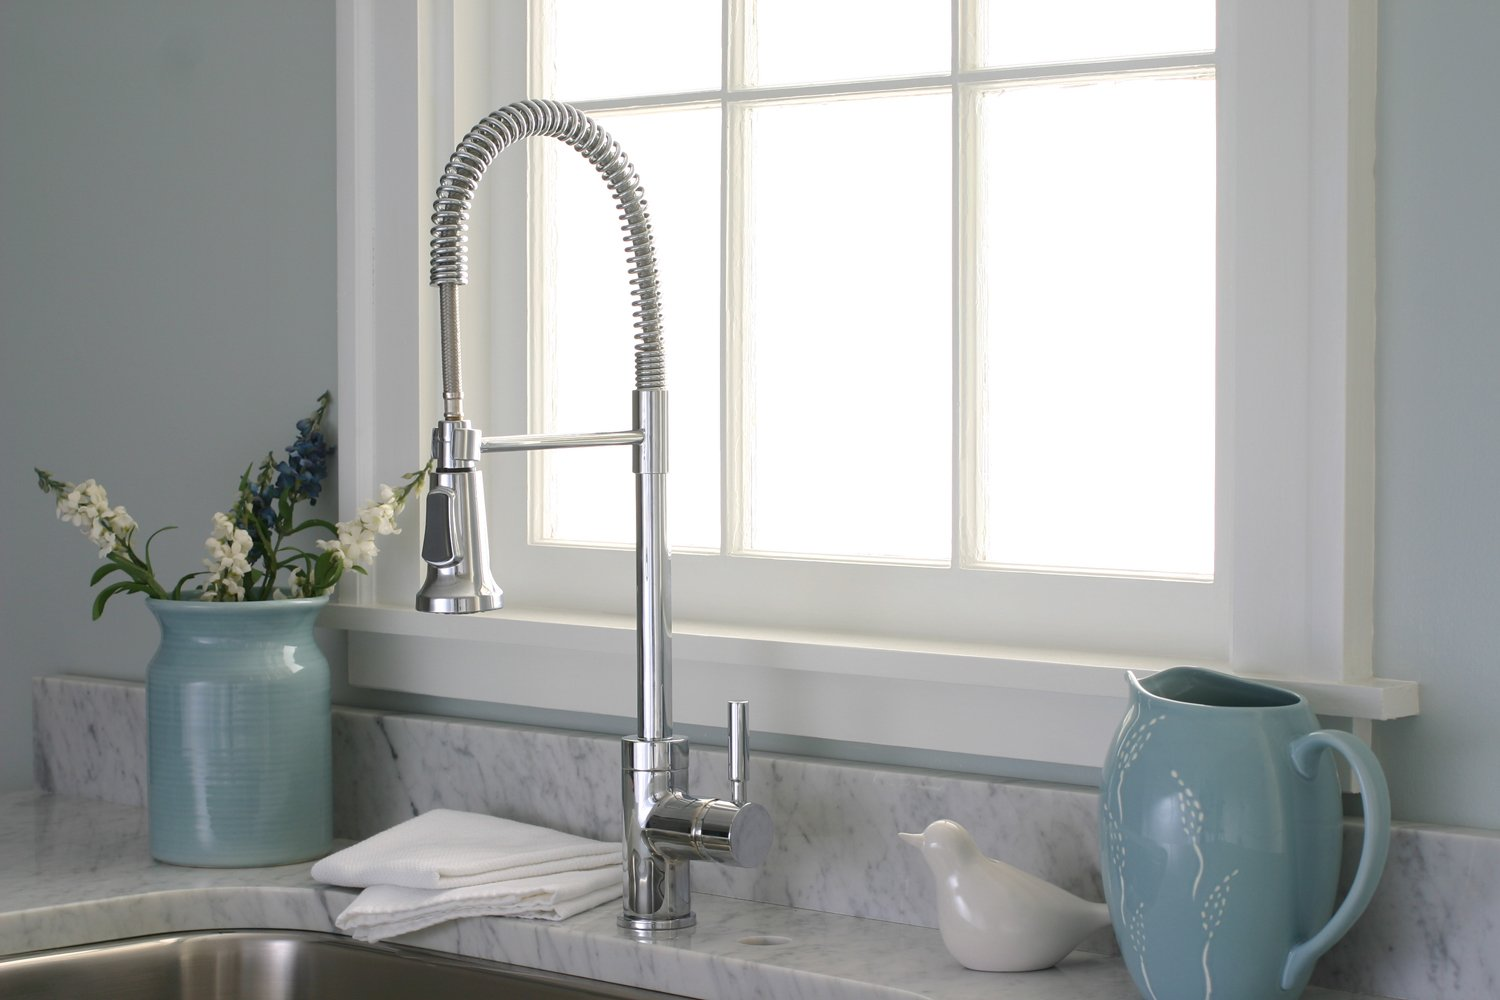 Premier Pull-Down Kitchen Faucet